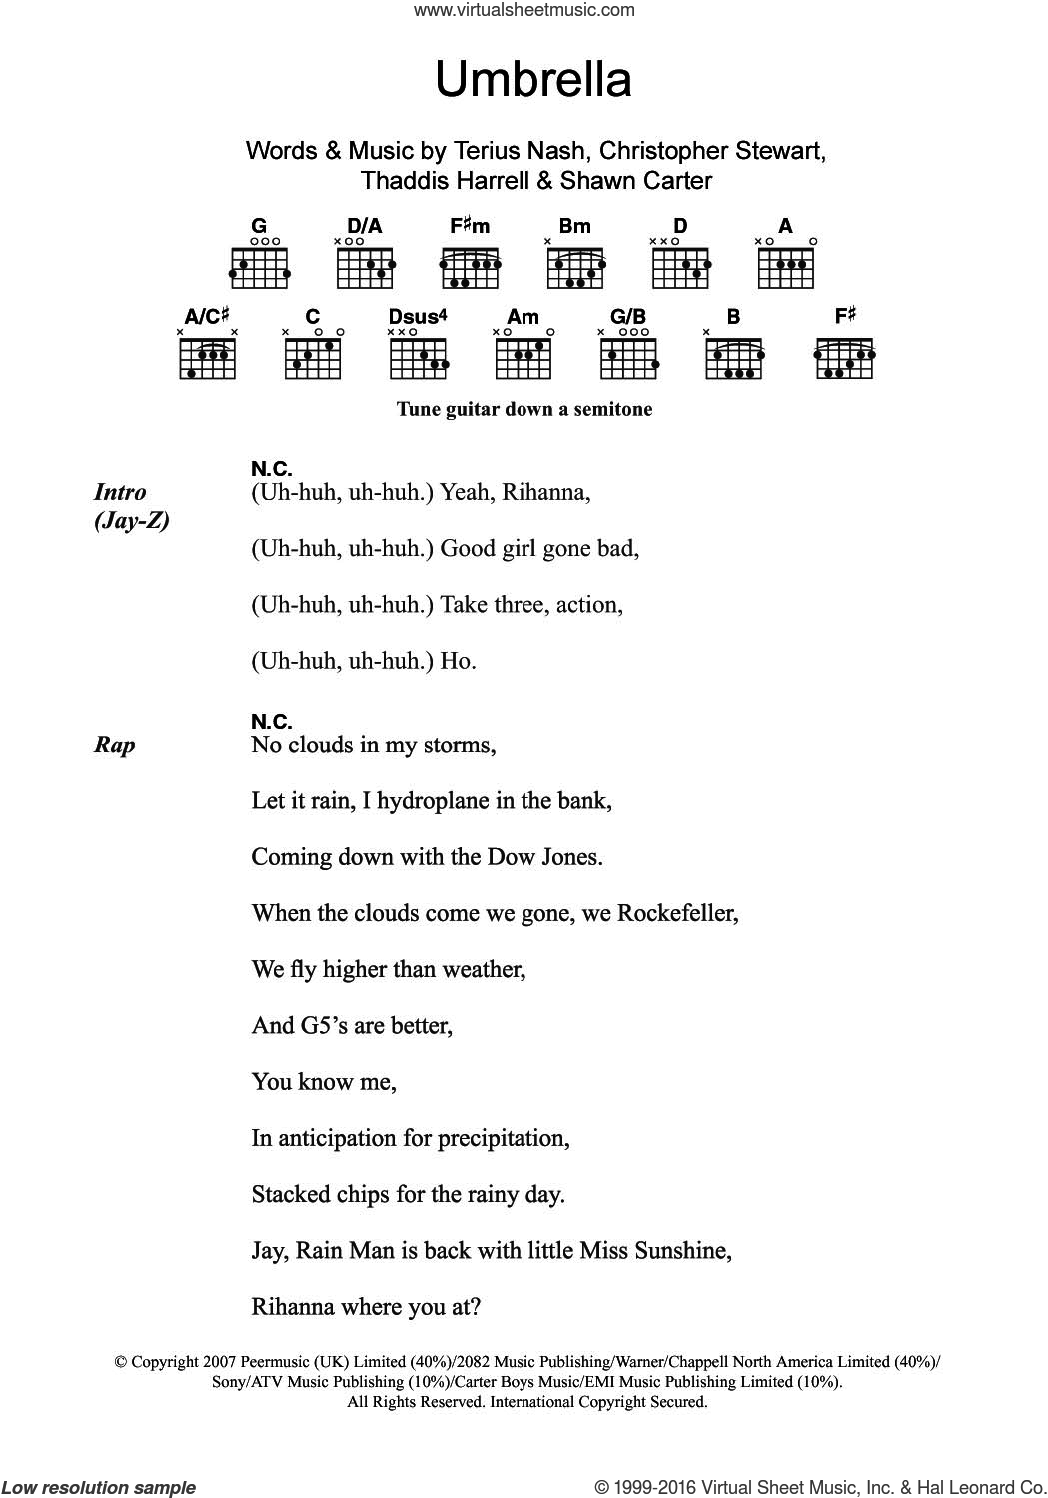 Umbrella (featuring Jay-Z) sheet music for guitar (chords) by Thaddis Harrell